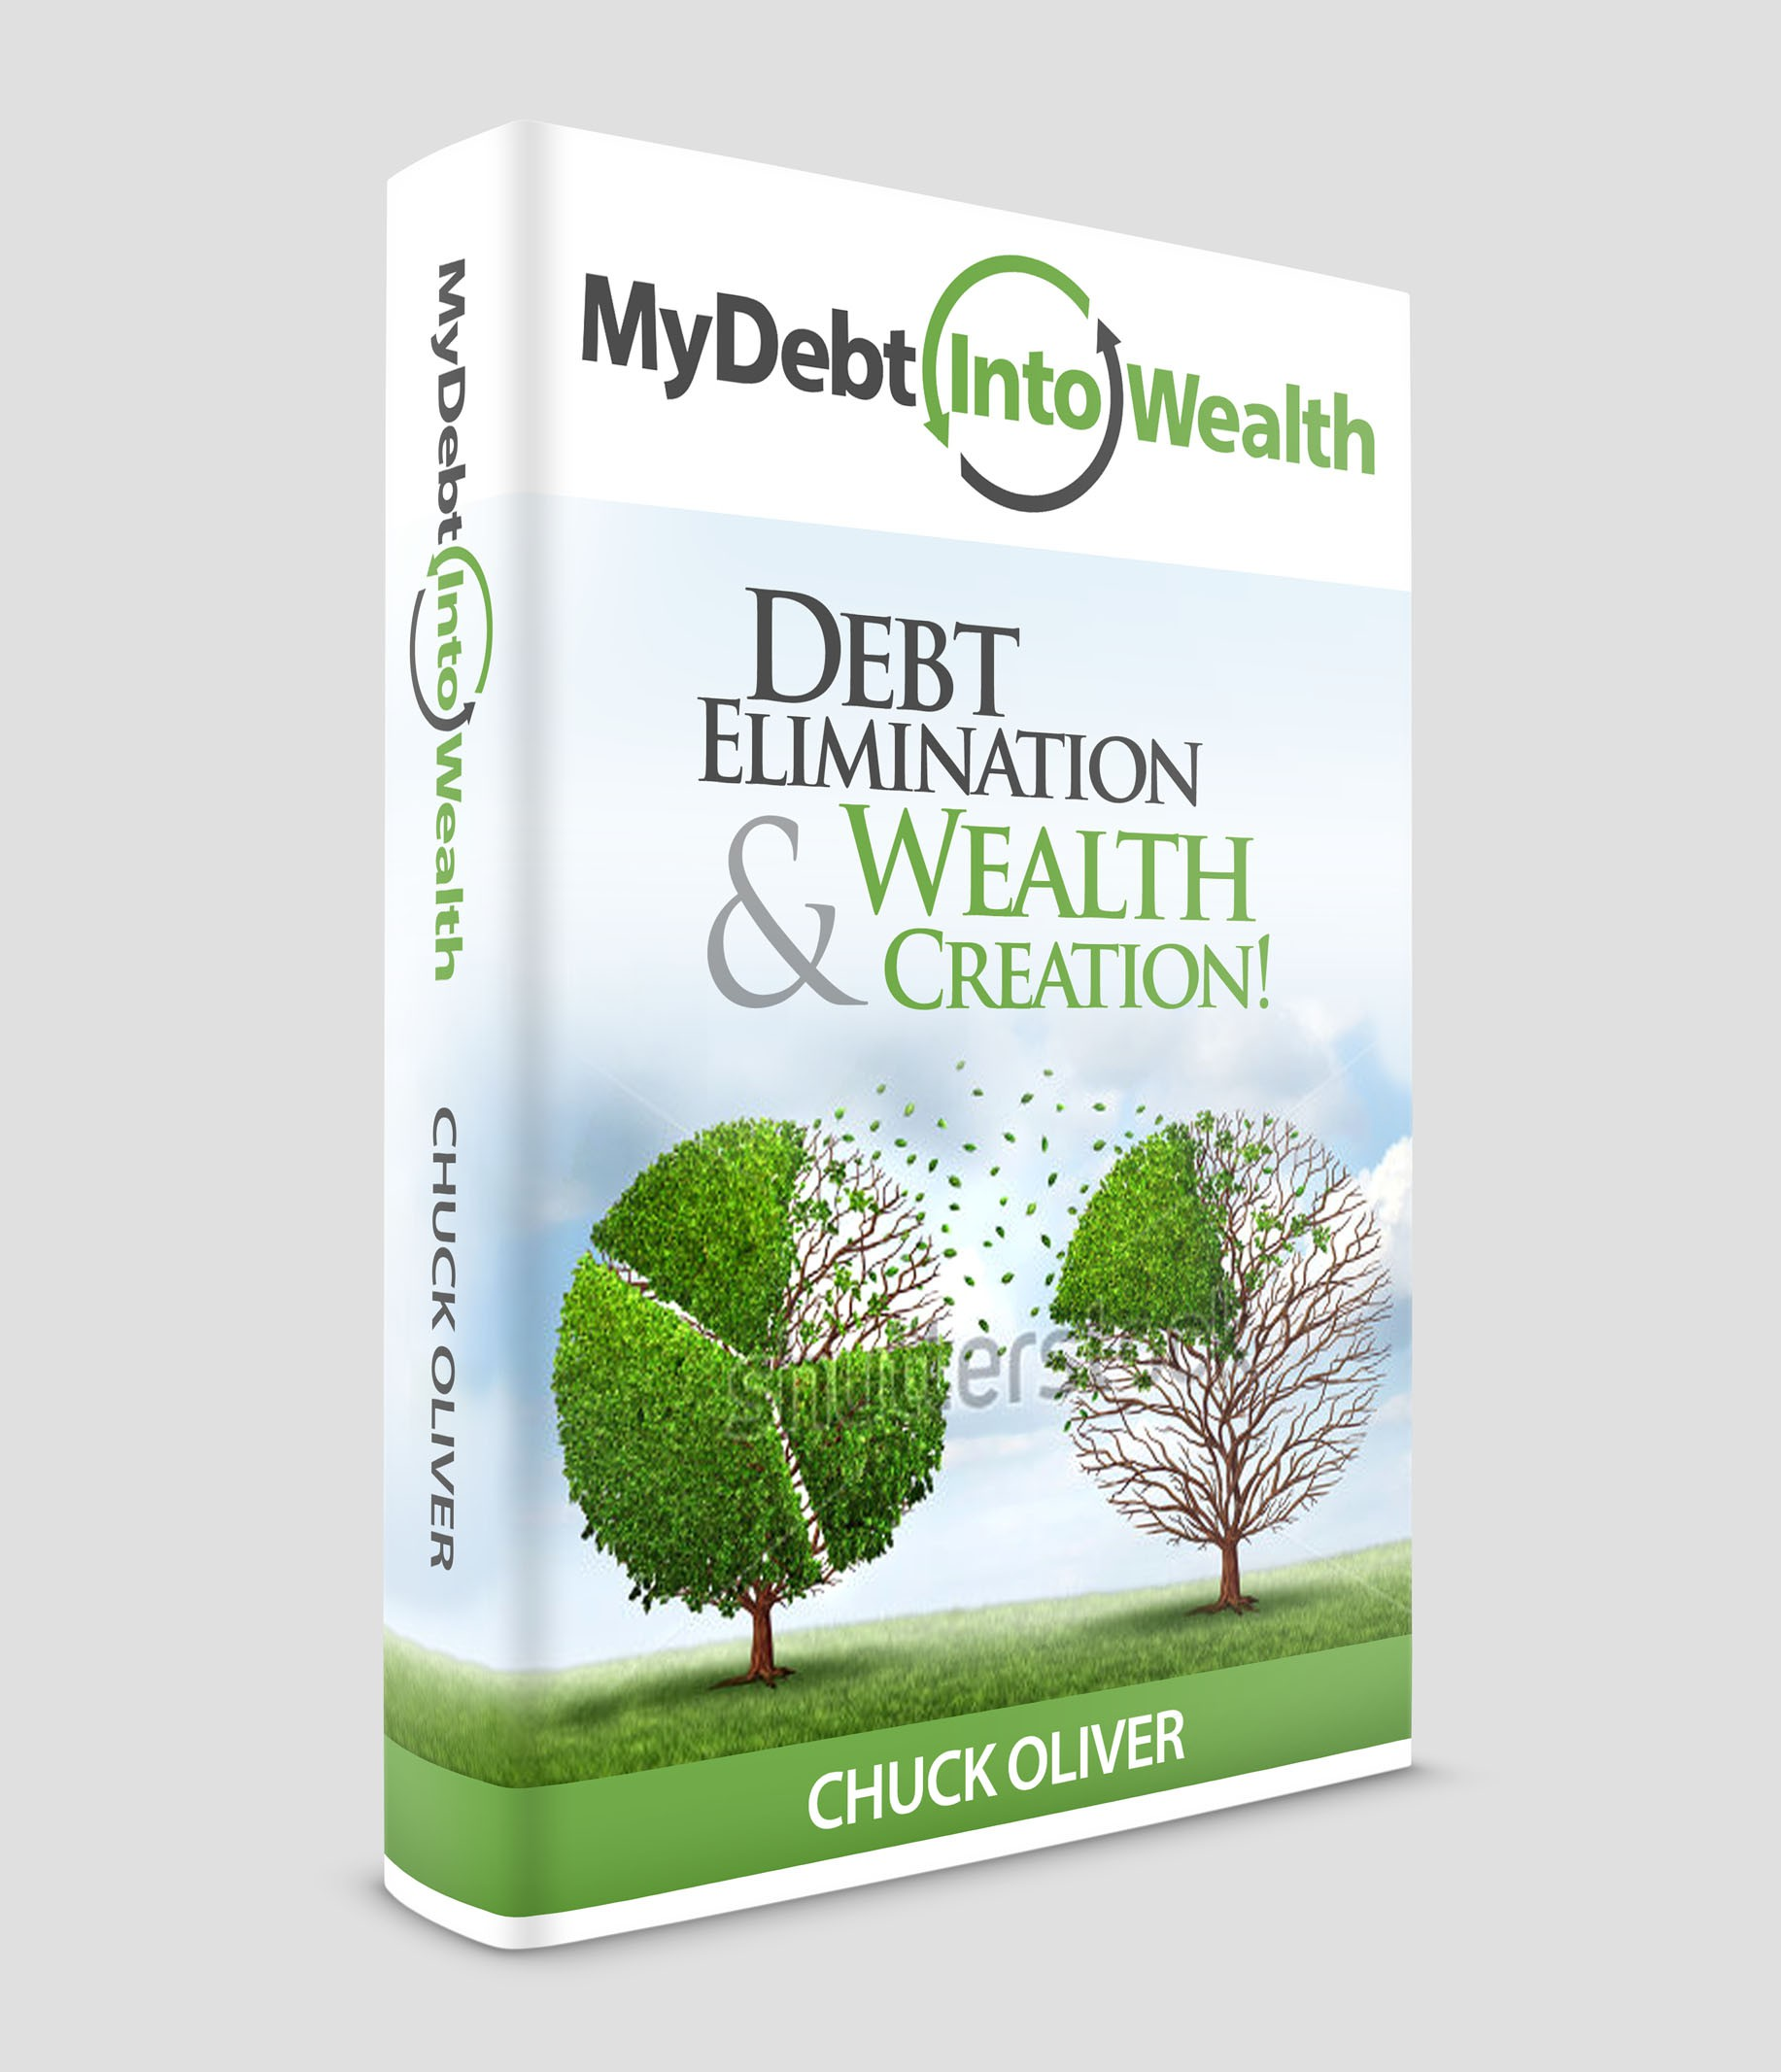 MY DEBT INTO WEALTH, Debt Elimination & Wealth Creation!